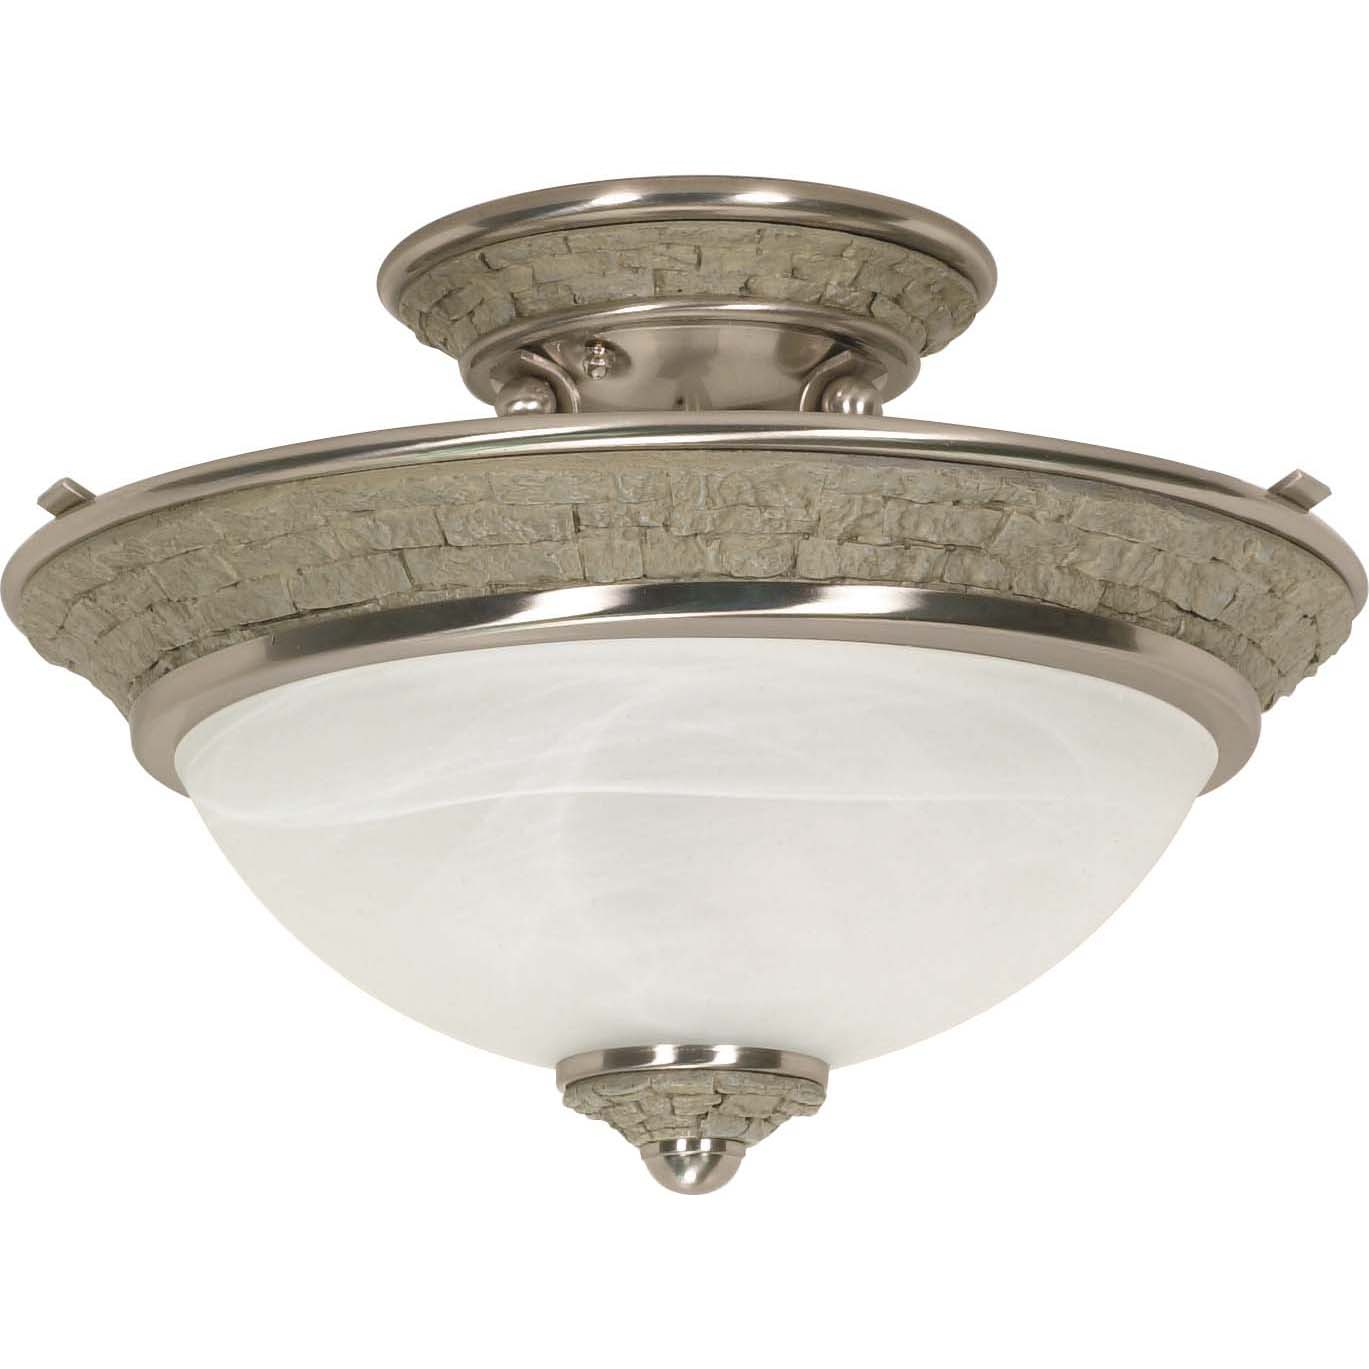 Rockport Milano Brushed Nickel Alabaster Glass 2-light Semi Flush Dome Fixture - Thumbnail 0